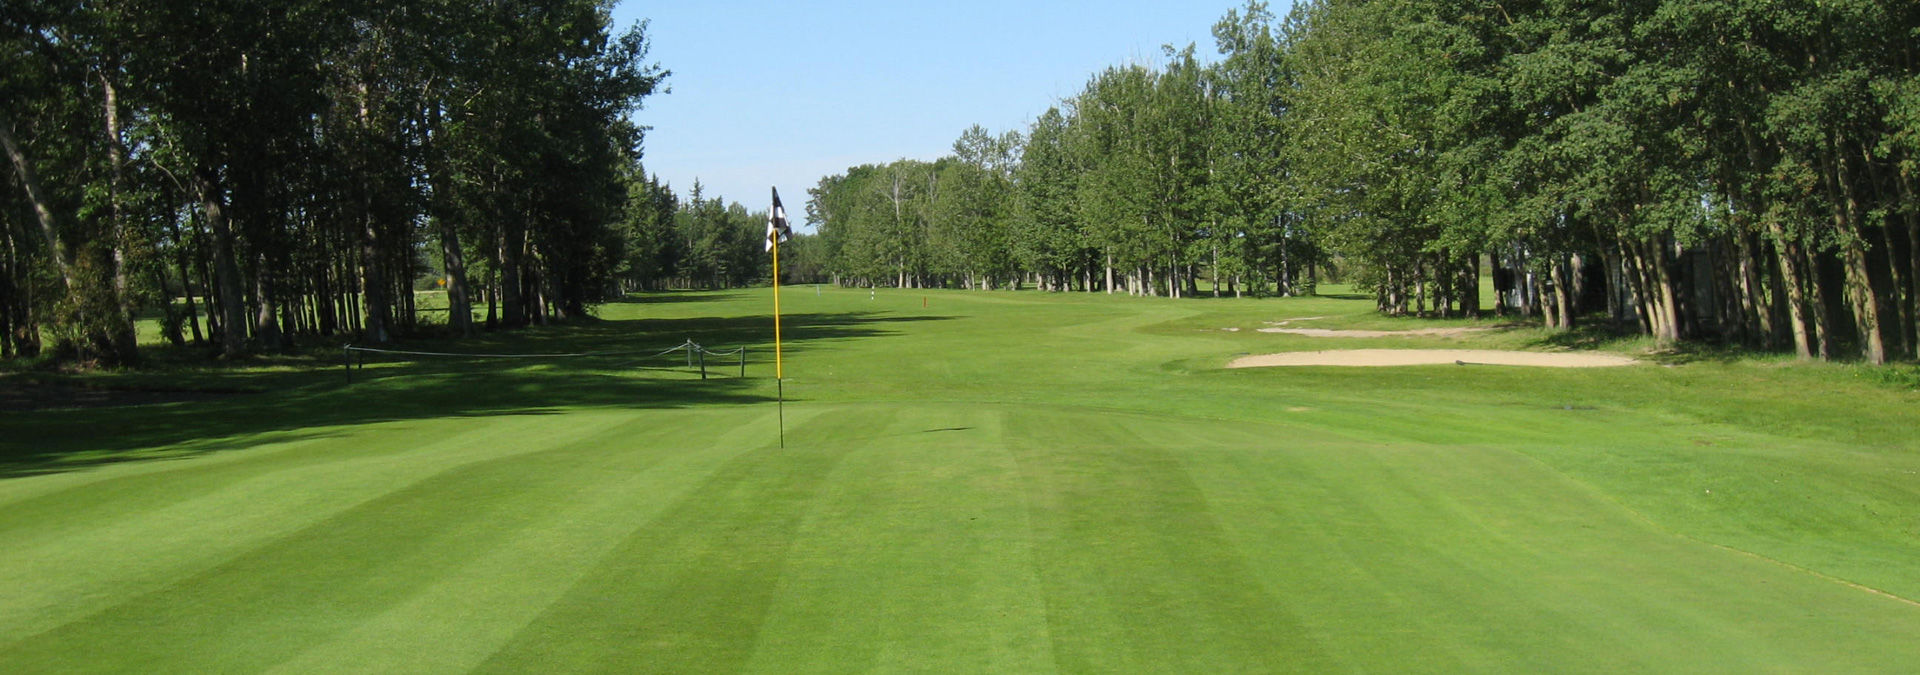 Creek golf course cover picture